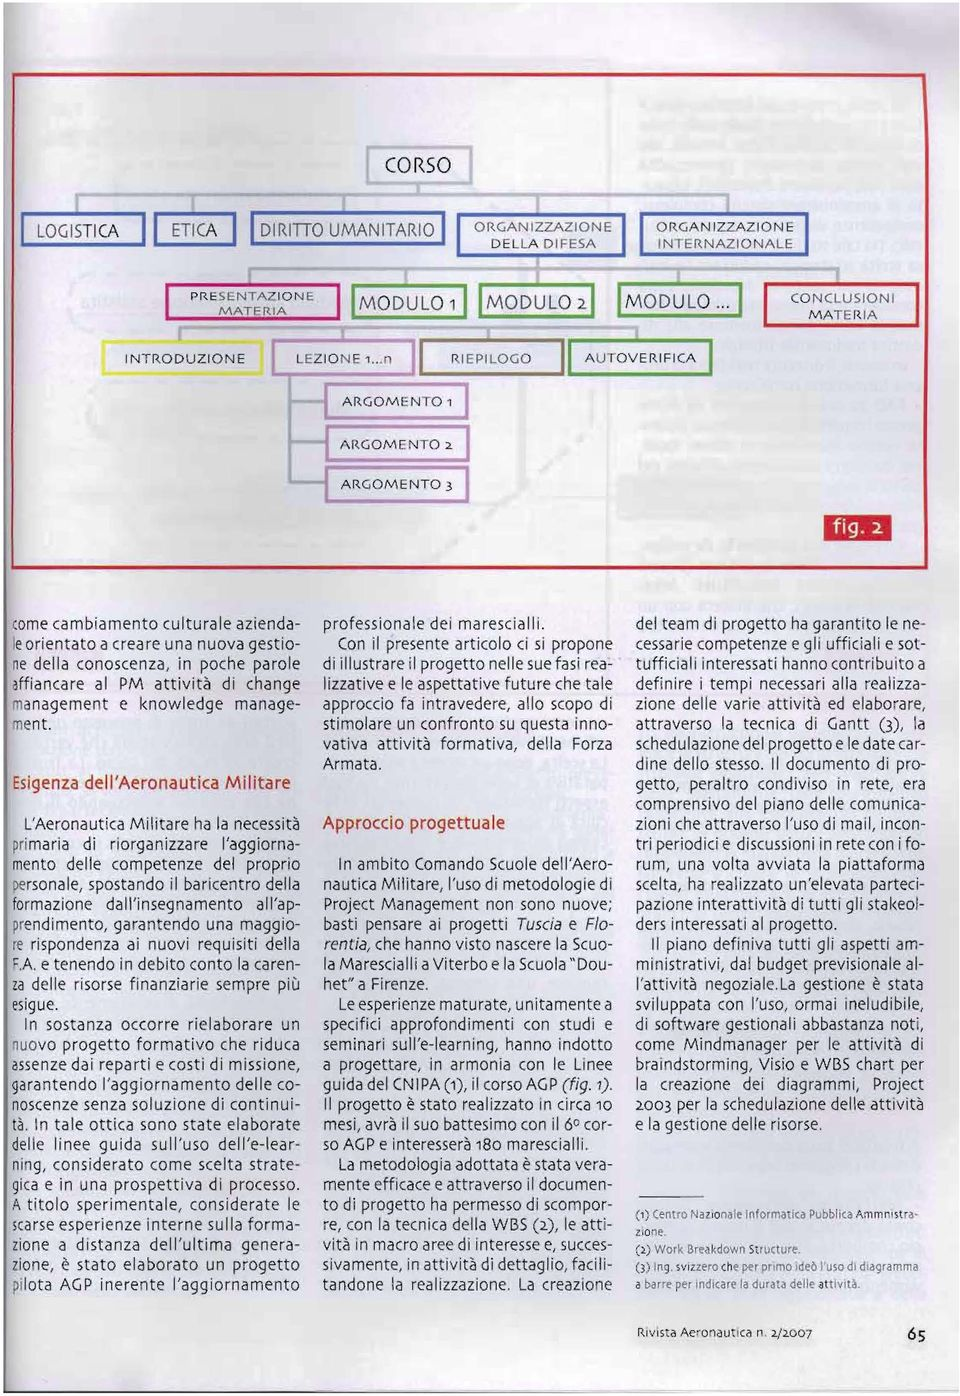 di change management e knowledge management.